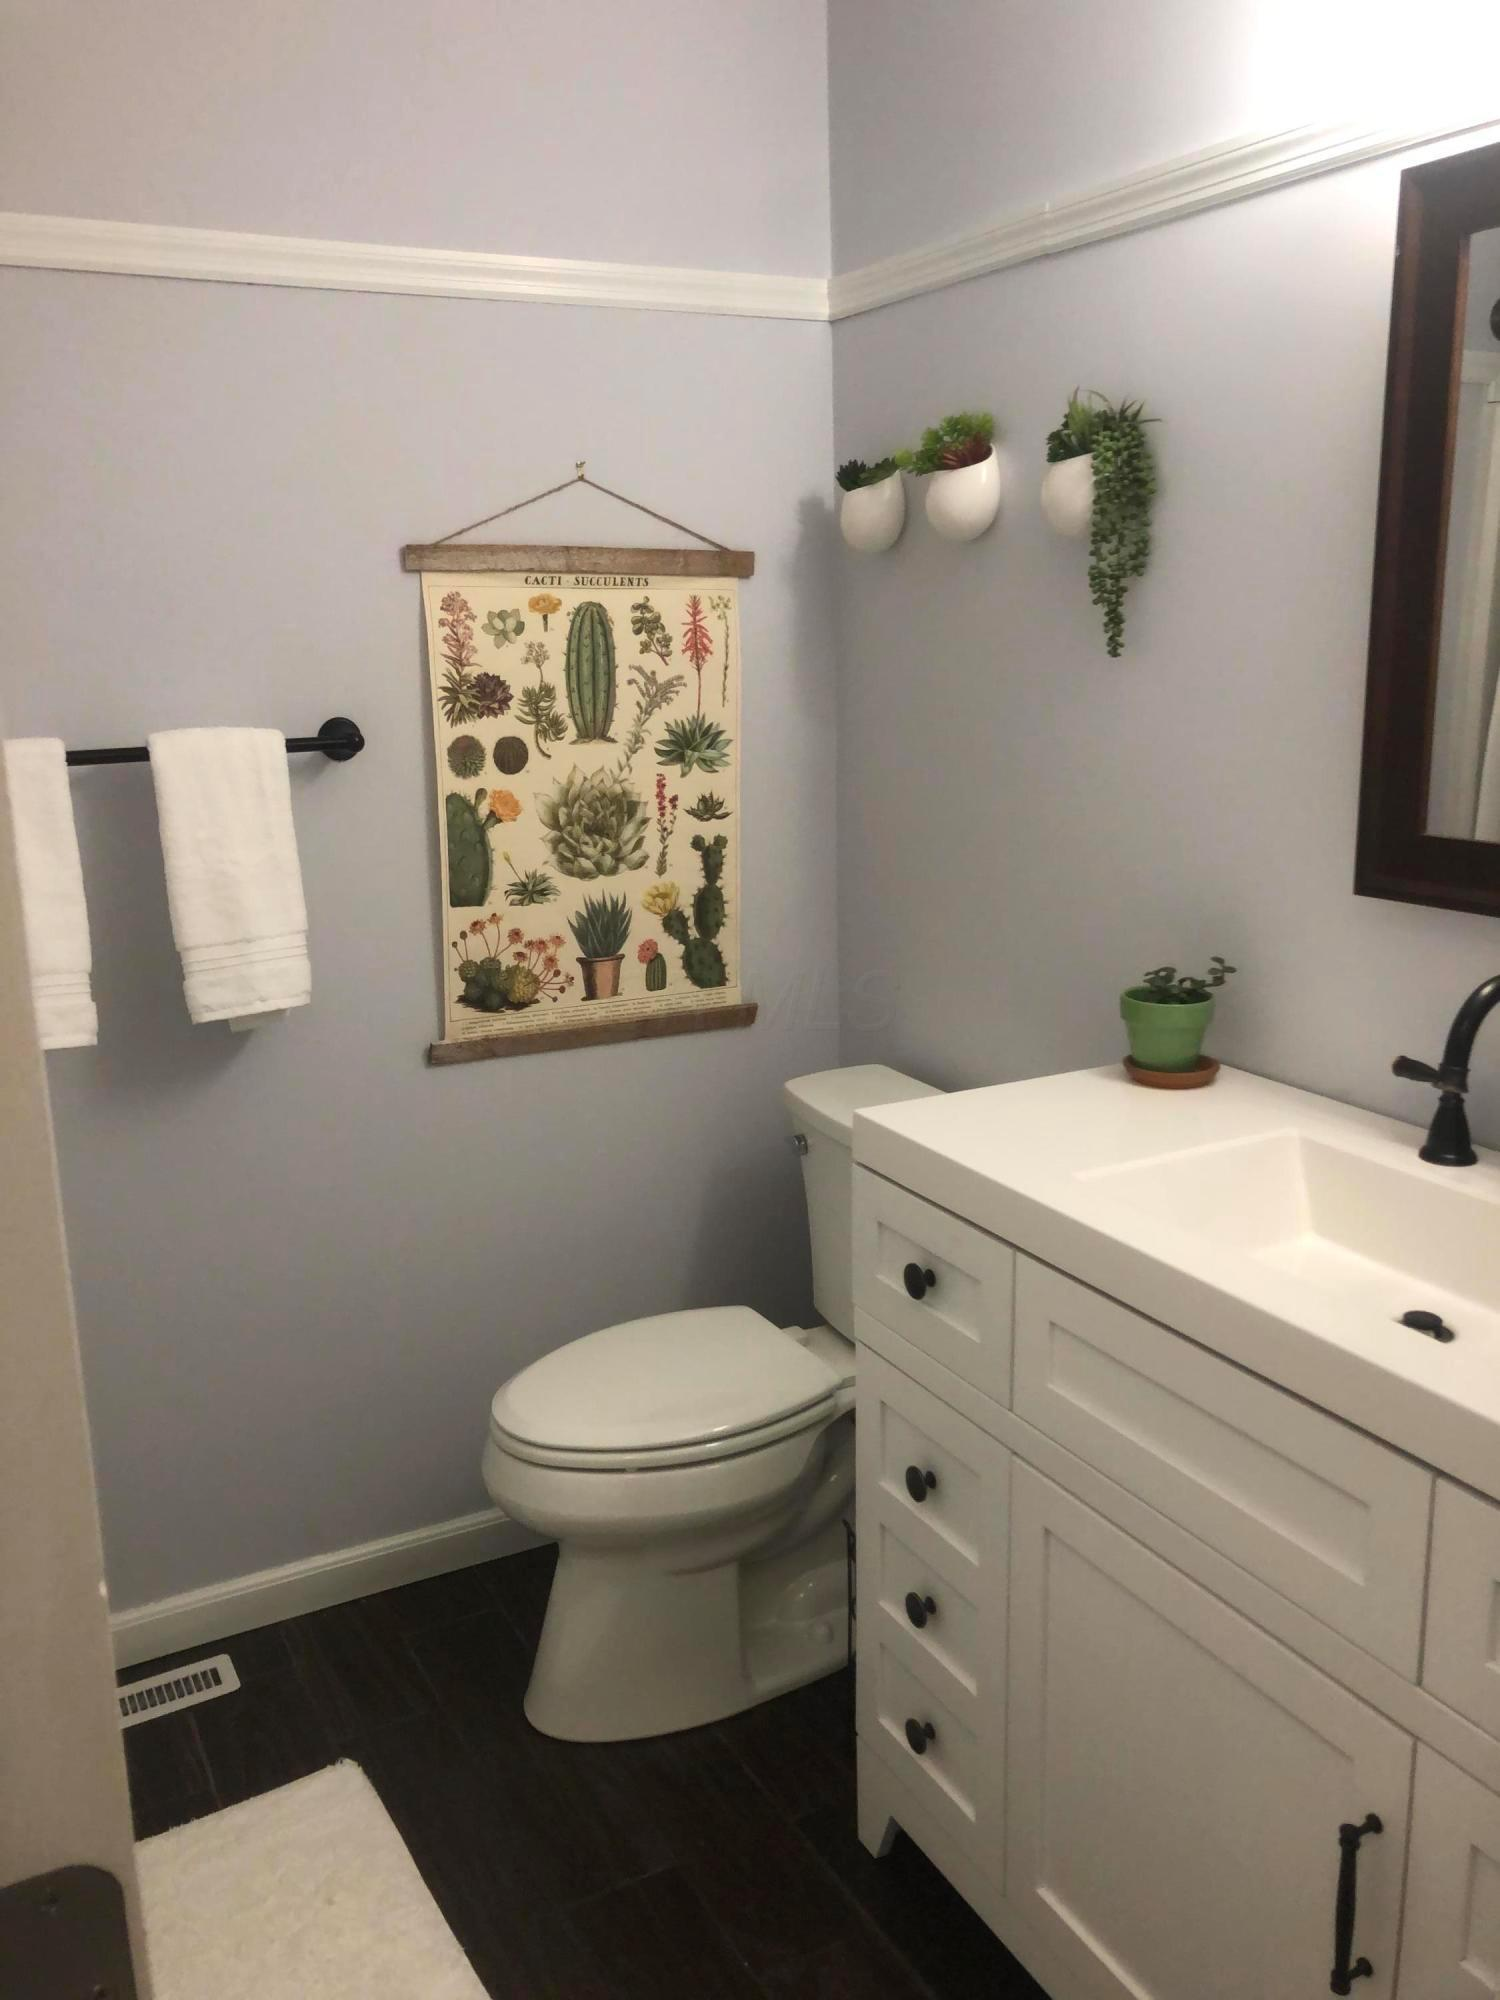 6360 Shaftsbury Lane, Dublin, Ohio 43017, 3 Bedrooms Bedrooms, ,3 BathroomsBathrooms,Residential,For Sale,Shaftsbury,220039099